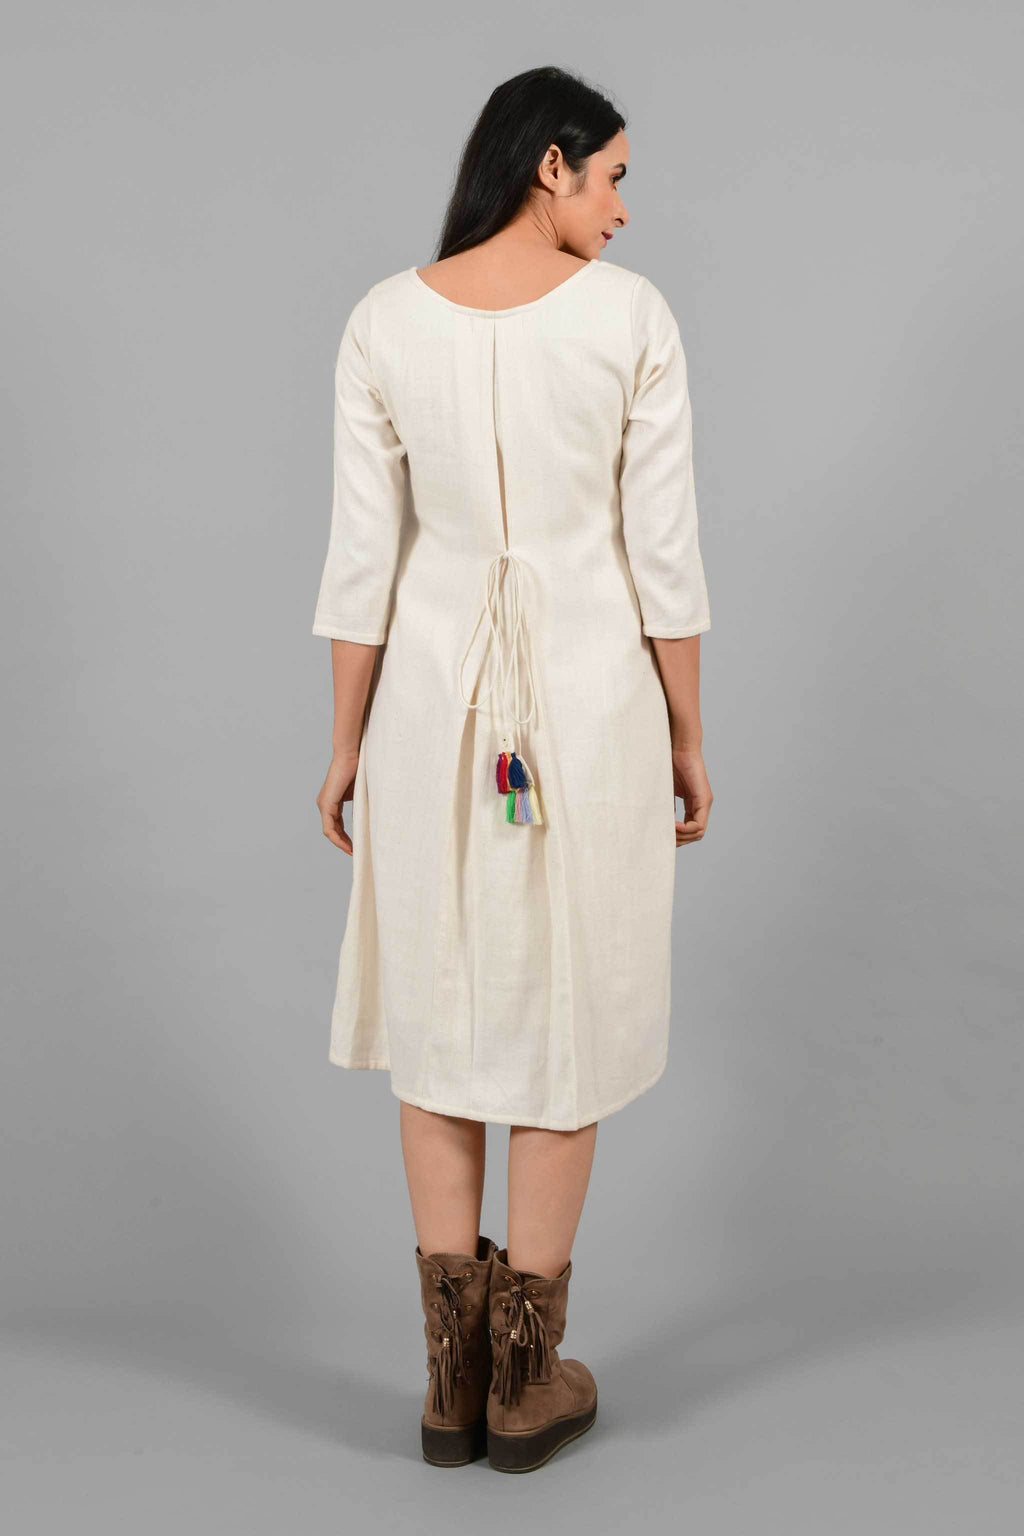 Back pose of an Indian female womenswear fashion model in an off-white Cashmere Cotton A-line Dress with box pleat on the back made using handspun and handwoven khadi cotton by Cotton Rack.